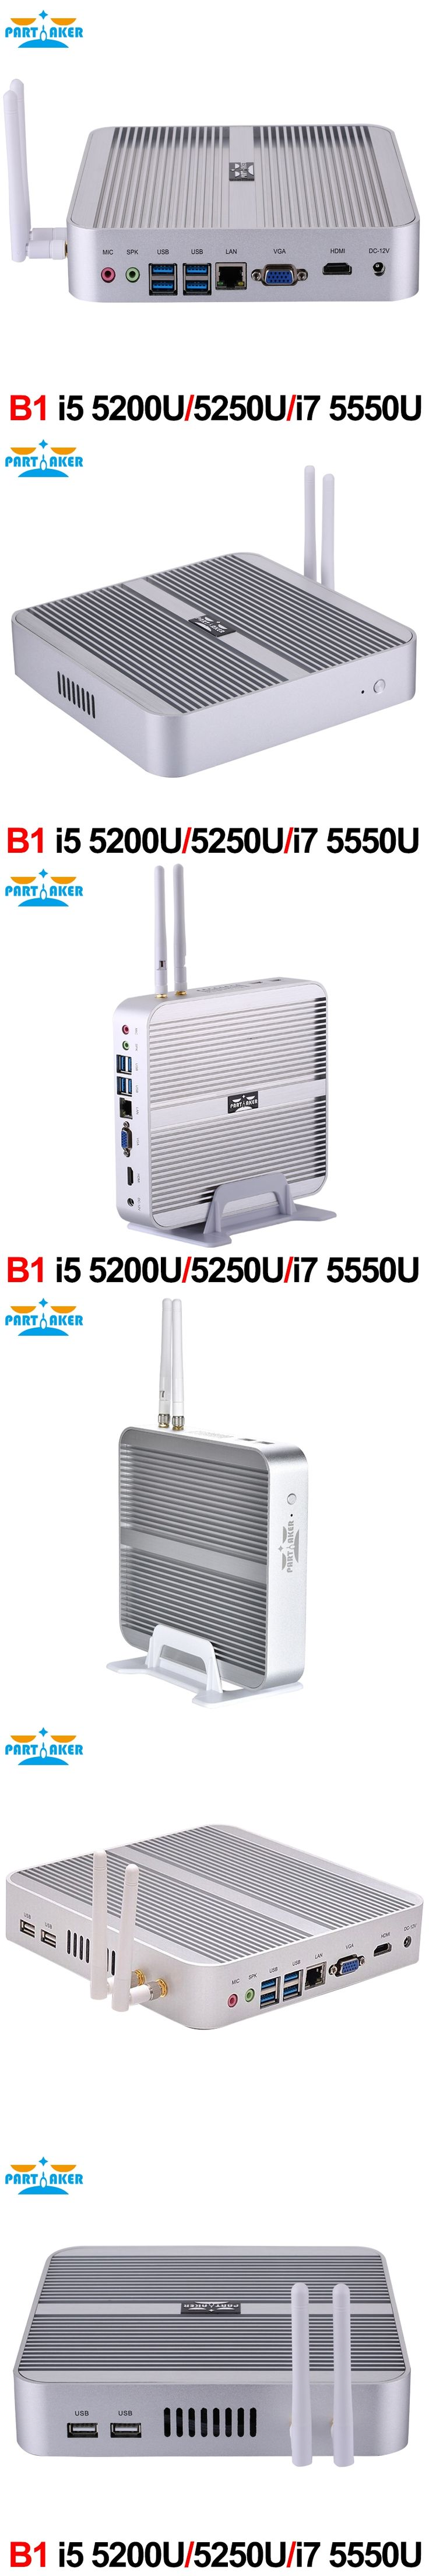 Fanless PC 4K mini pc i5 4200u with Core i5 4200U i5 5200u i5 5250u 1.6Ghz CPU Haswell Architecture SOC design aluminum chassis